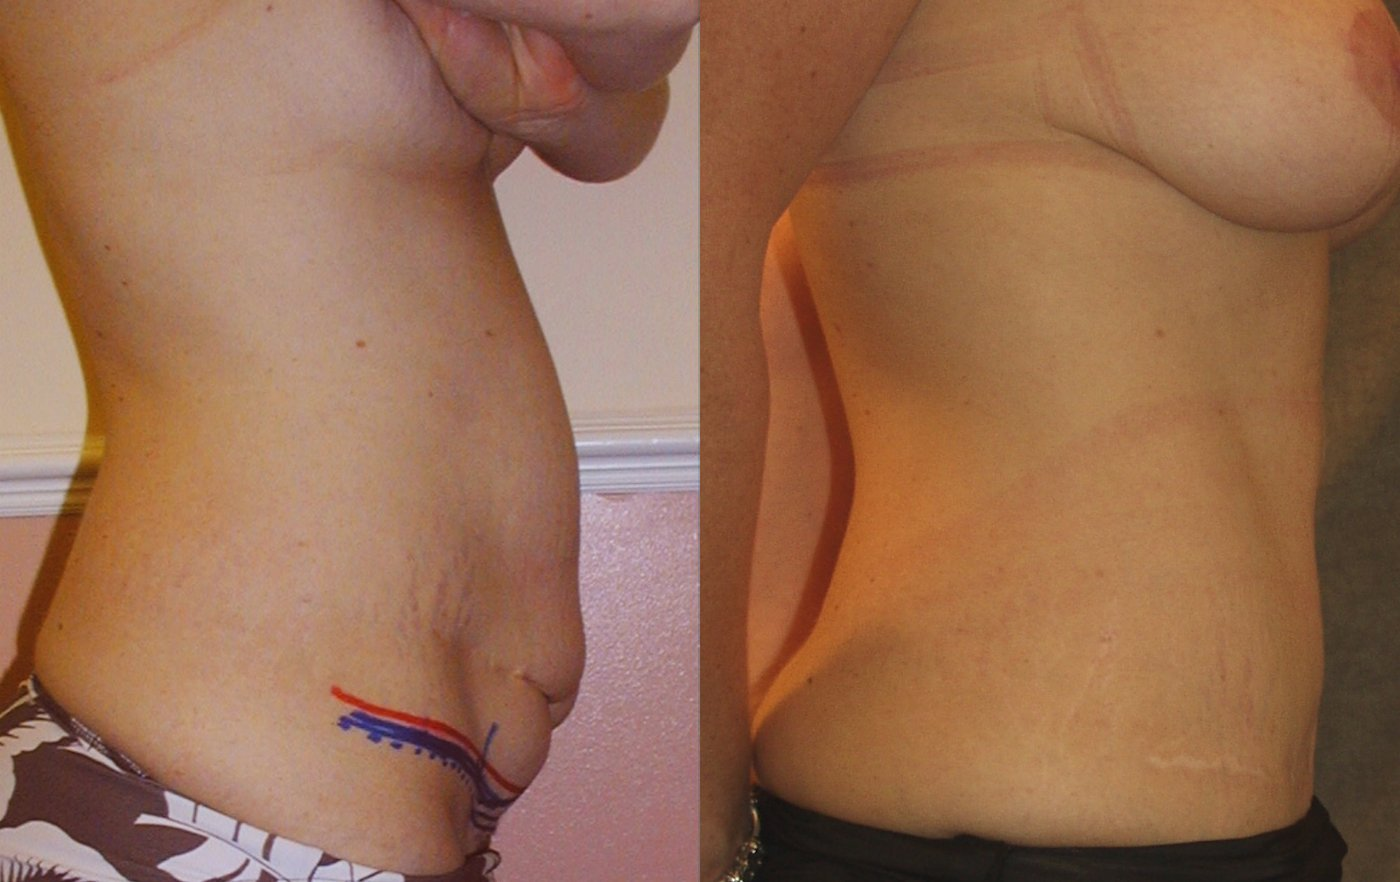 35-year-old abdominoplasty with prior surgery scars 3 years after surgery, right side view